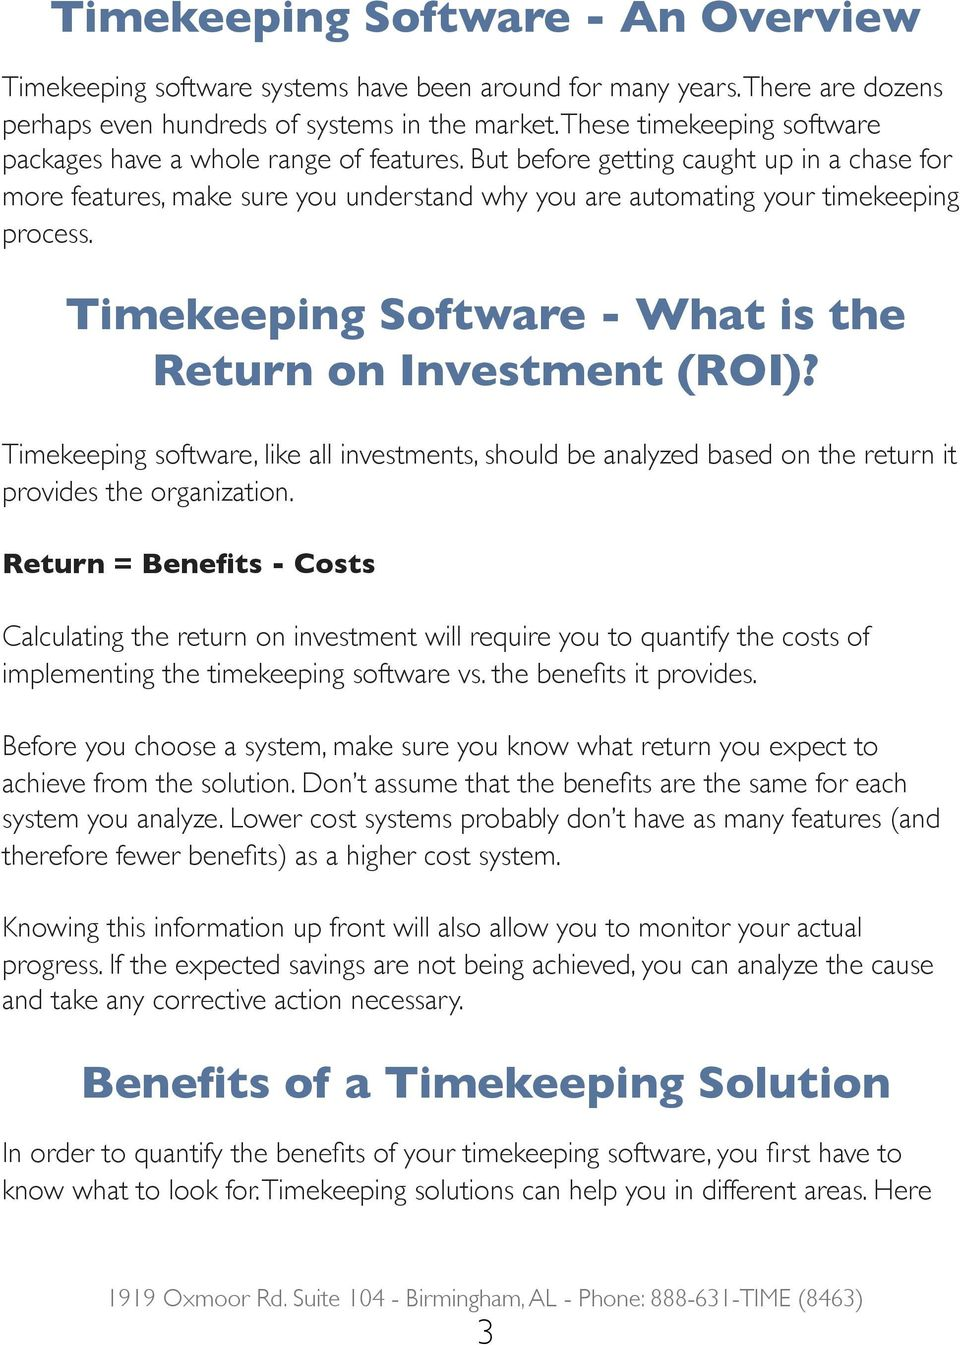 Timekeeping Software - What is the Return on Investment (ROI)? Timekeeping software, like all investments, should be analyzed based on the return it provides the organization.